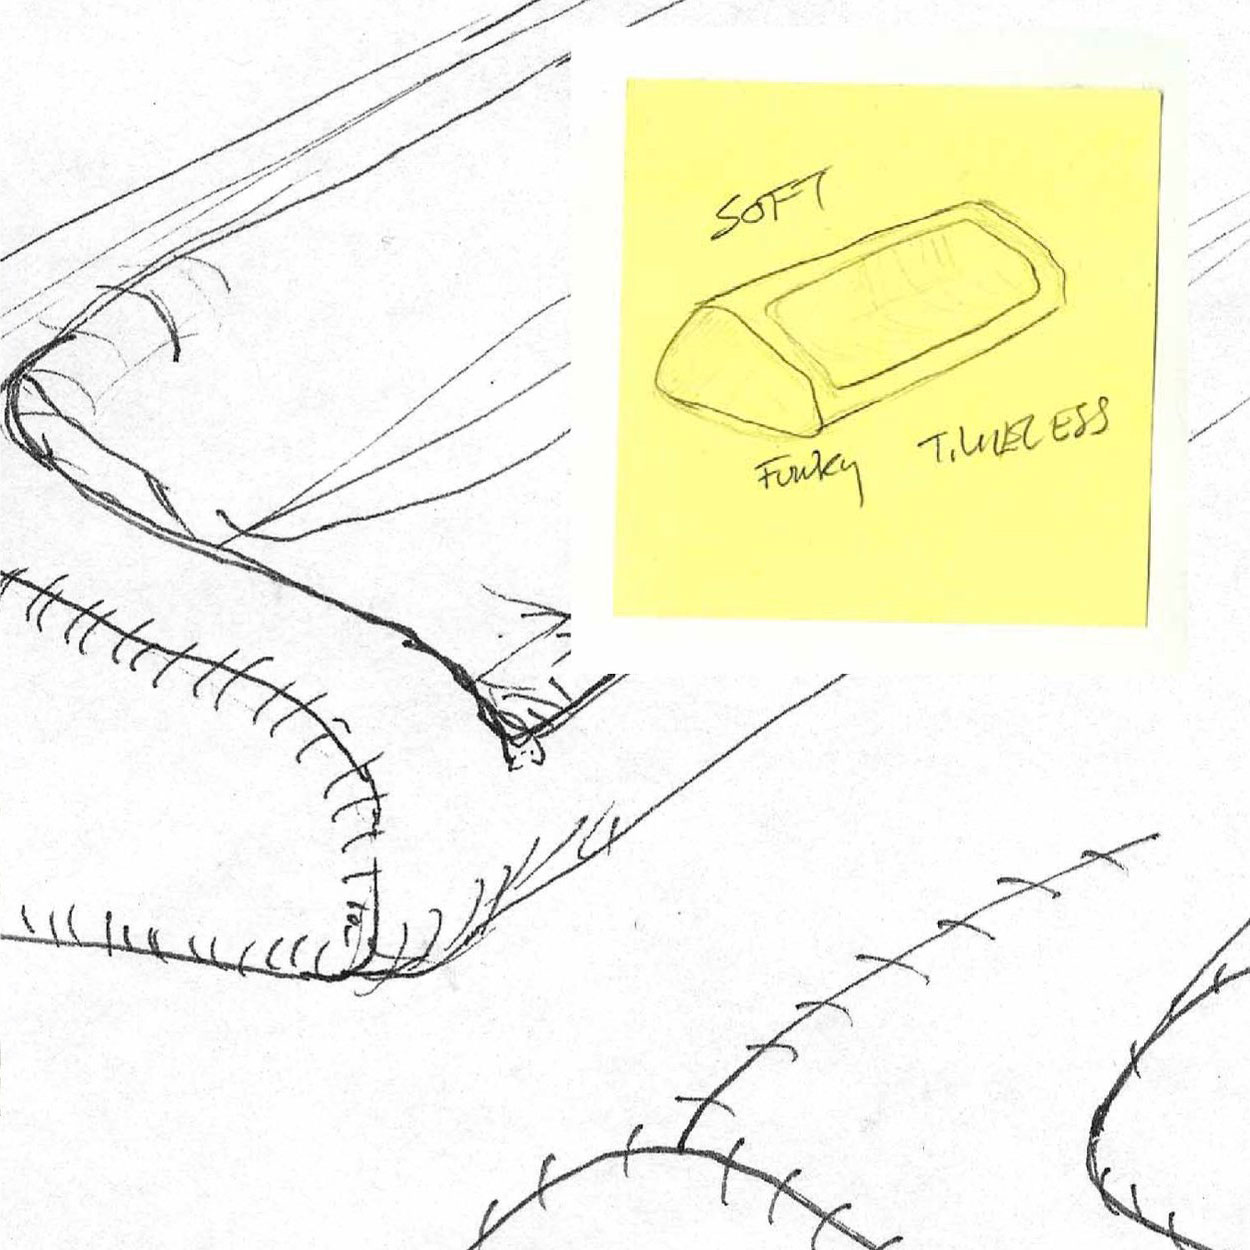 Sketch about the front of mormor sofa designed by Johannes Torpe Studios